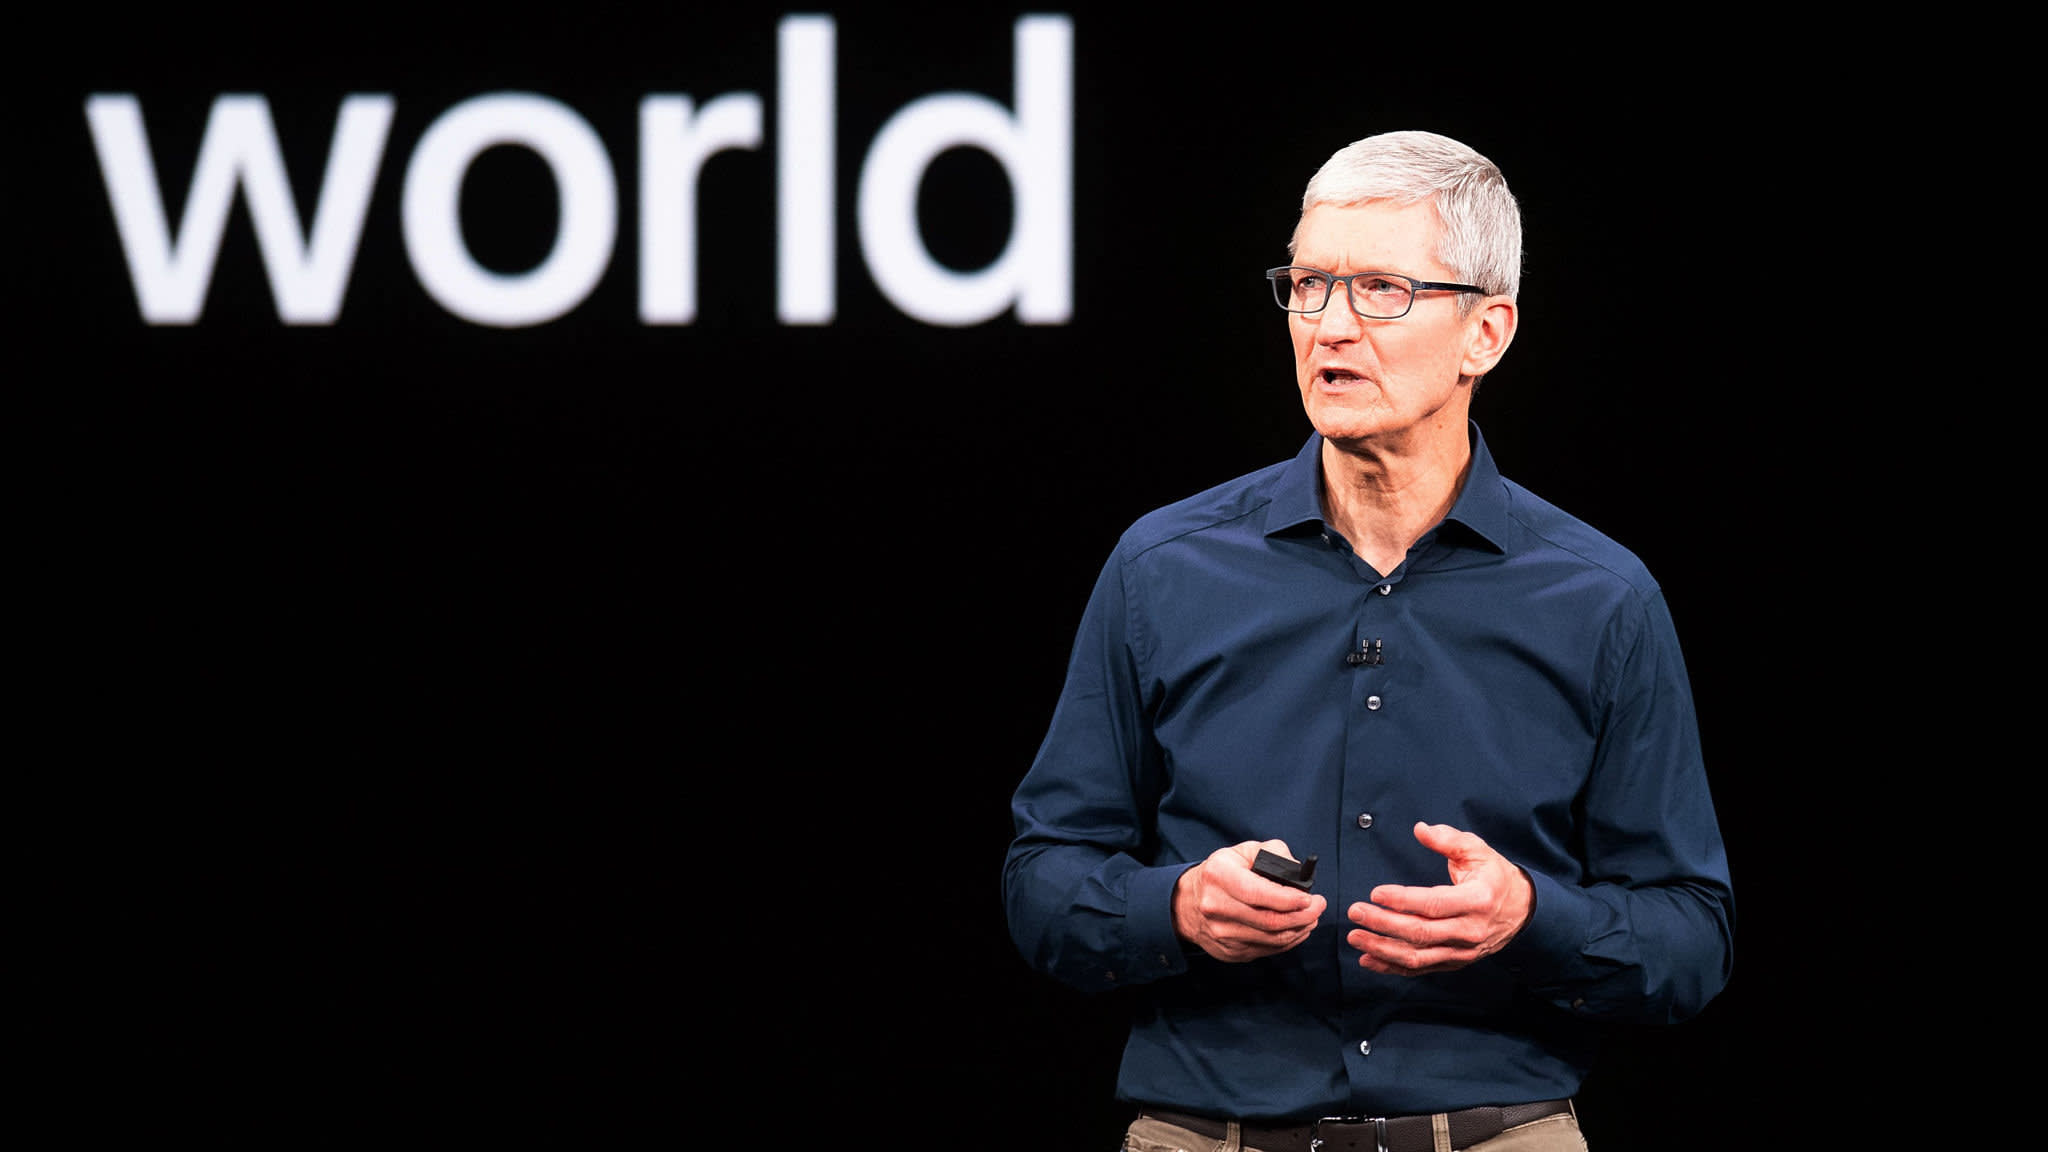 Apple's Tim Cook makes debut at World Economic Forum in Davos   Financial Times